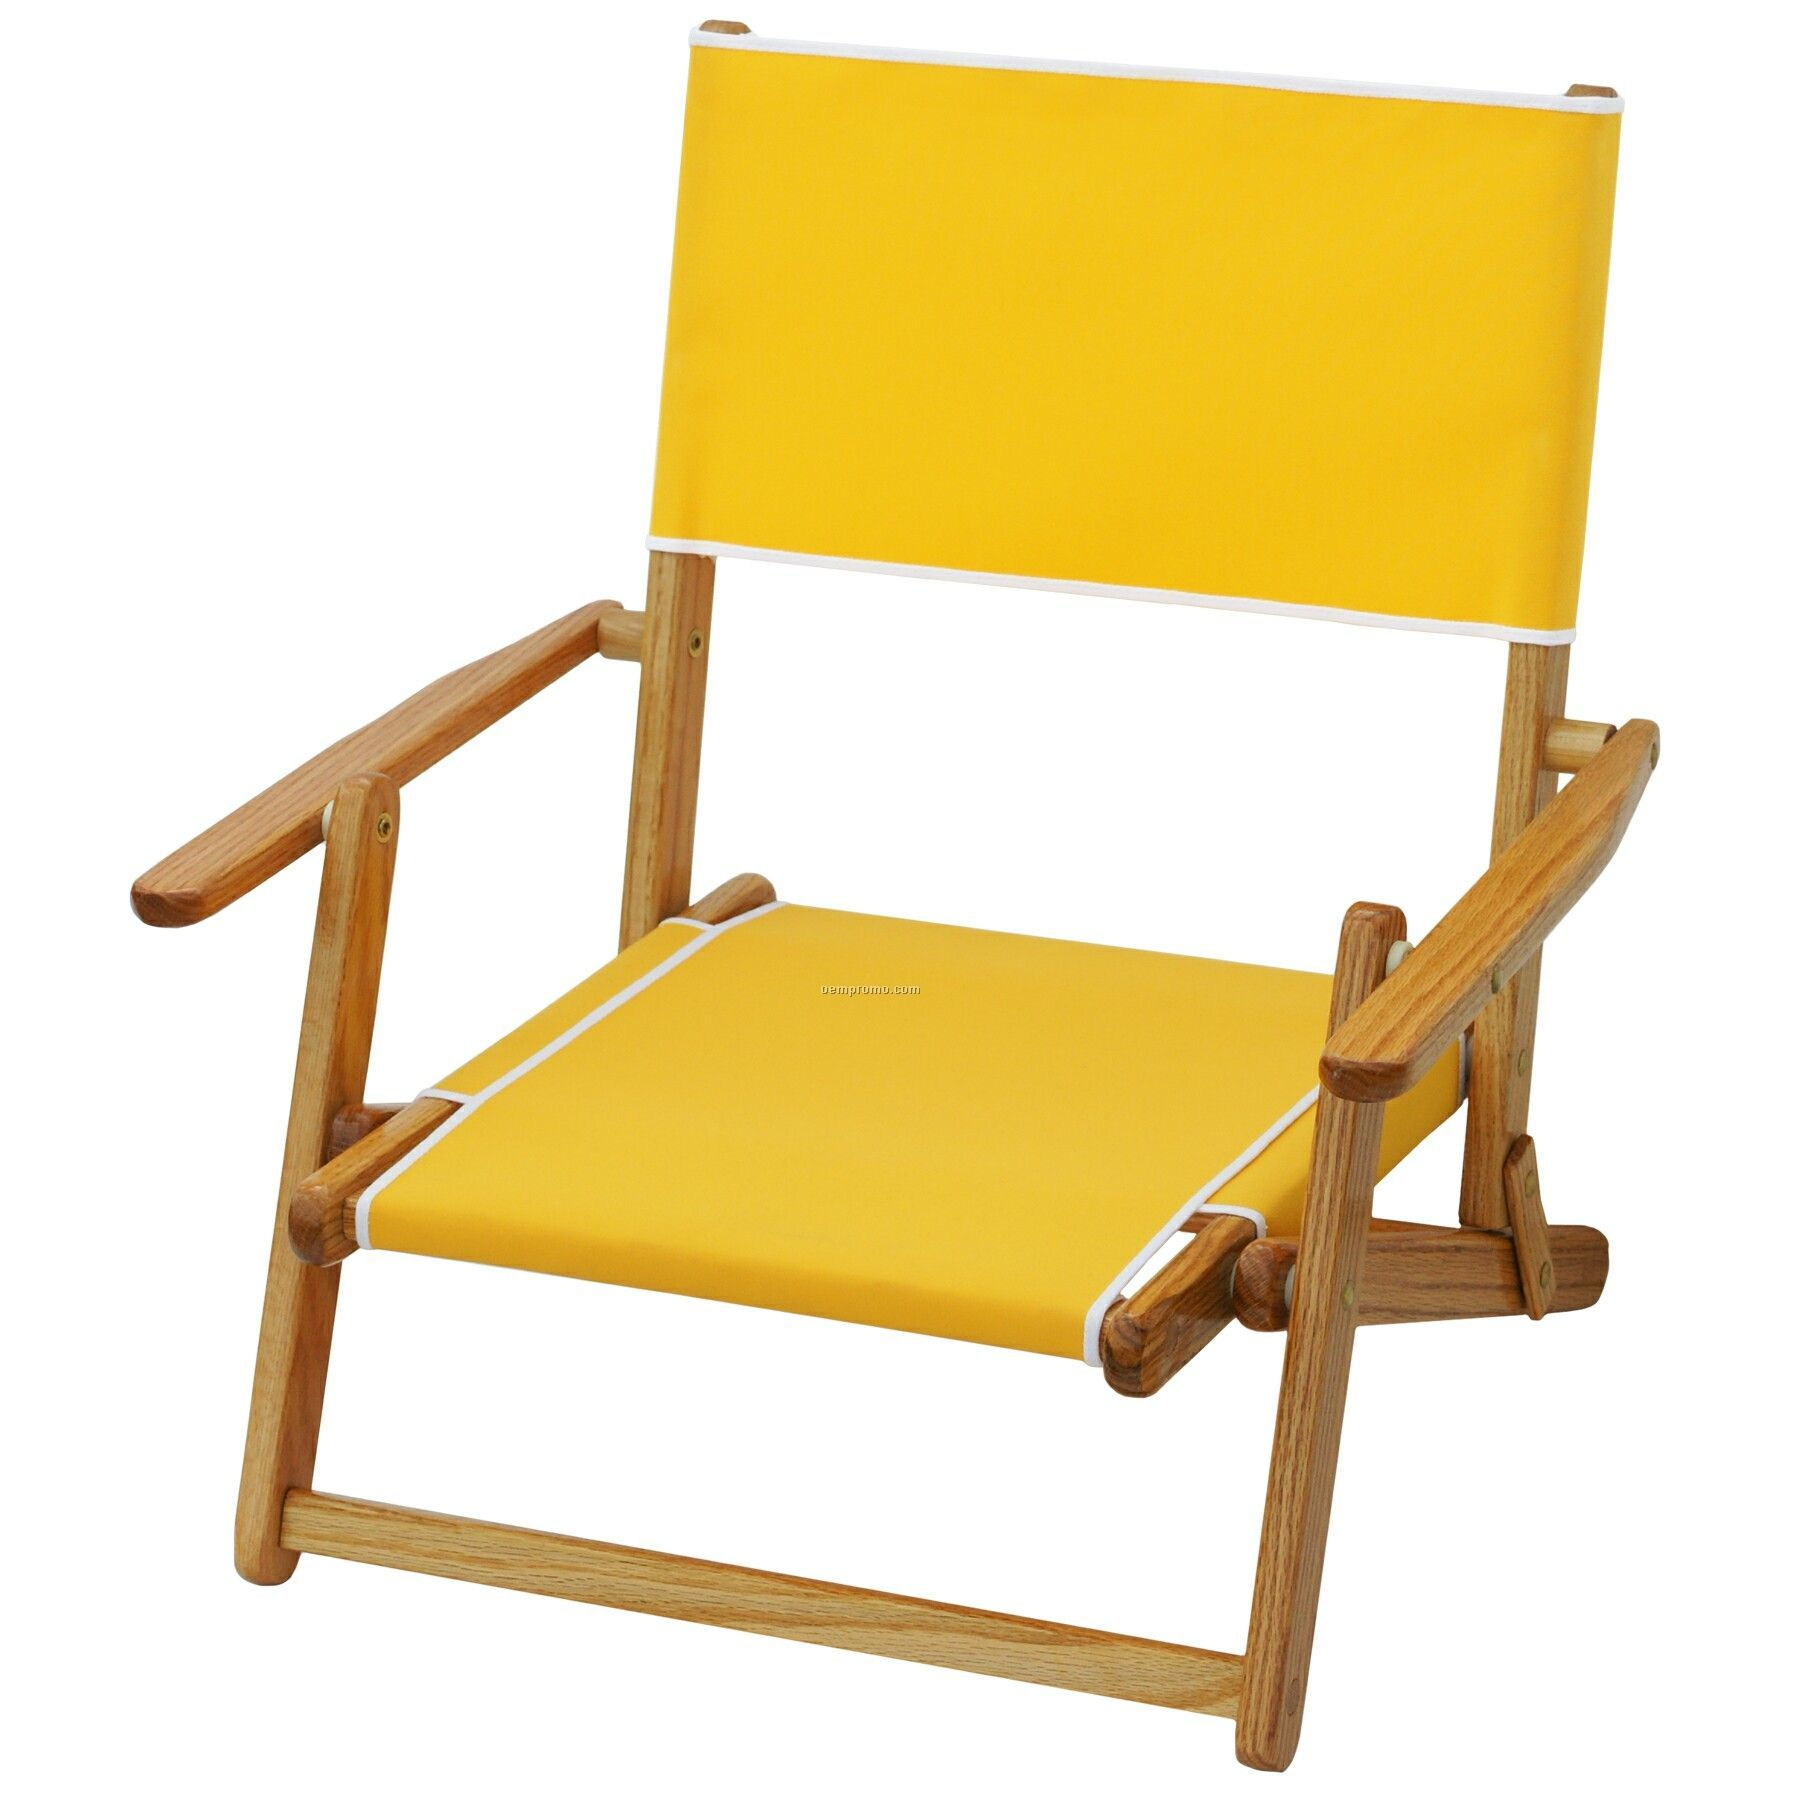 folding low beach chair discount directors chairs us made deluxe solid oak hardwood frame sand china